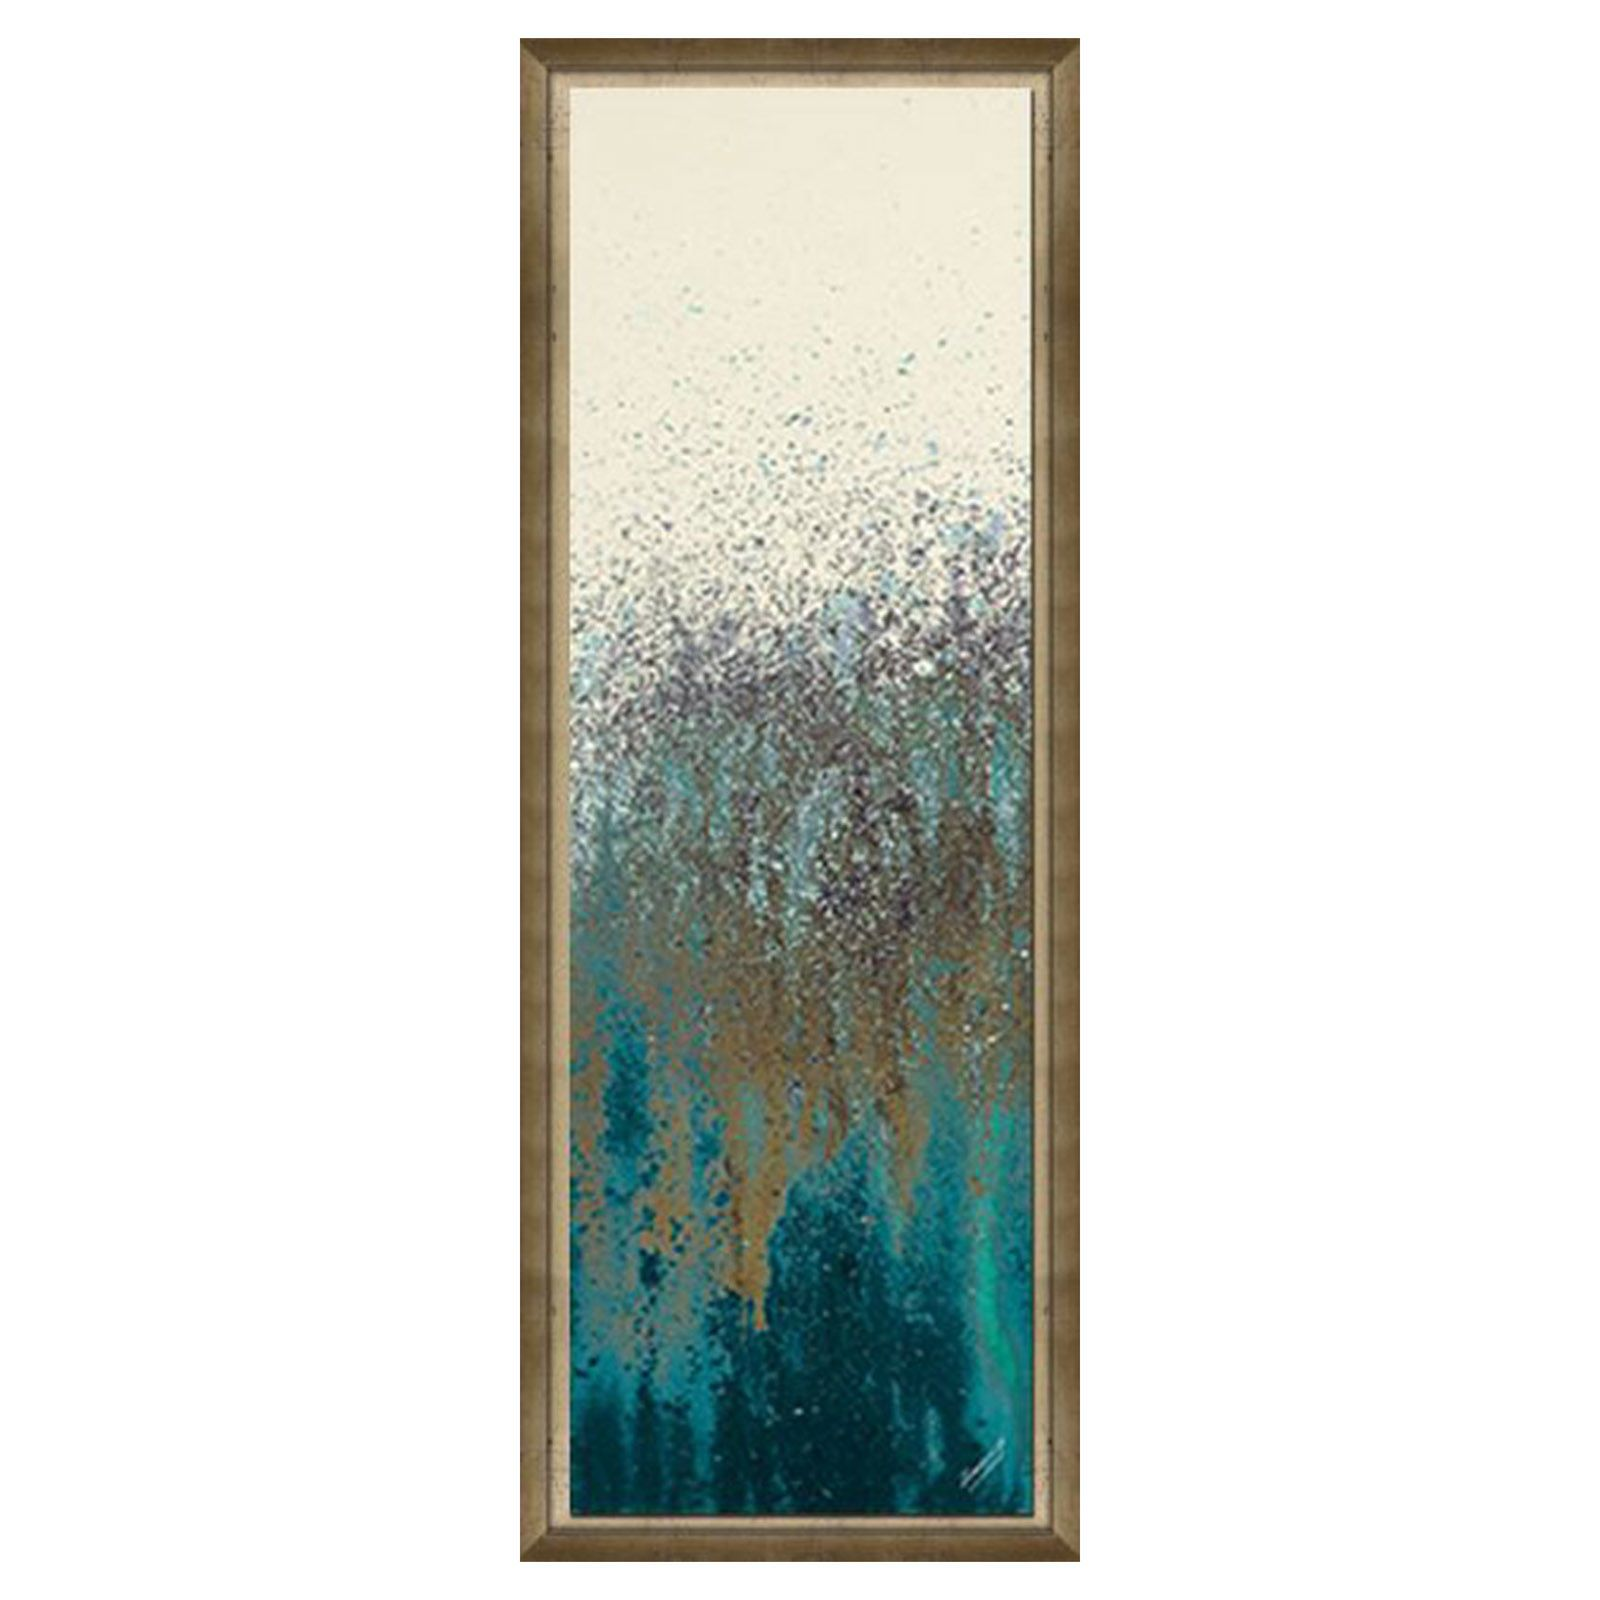 12 X 36 In Teal Wood Framed Studio Art